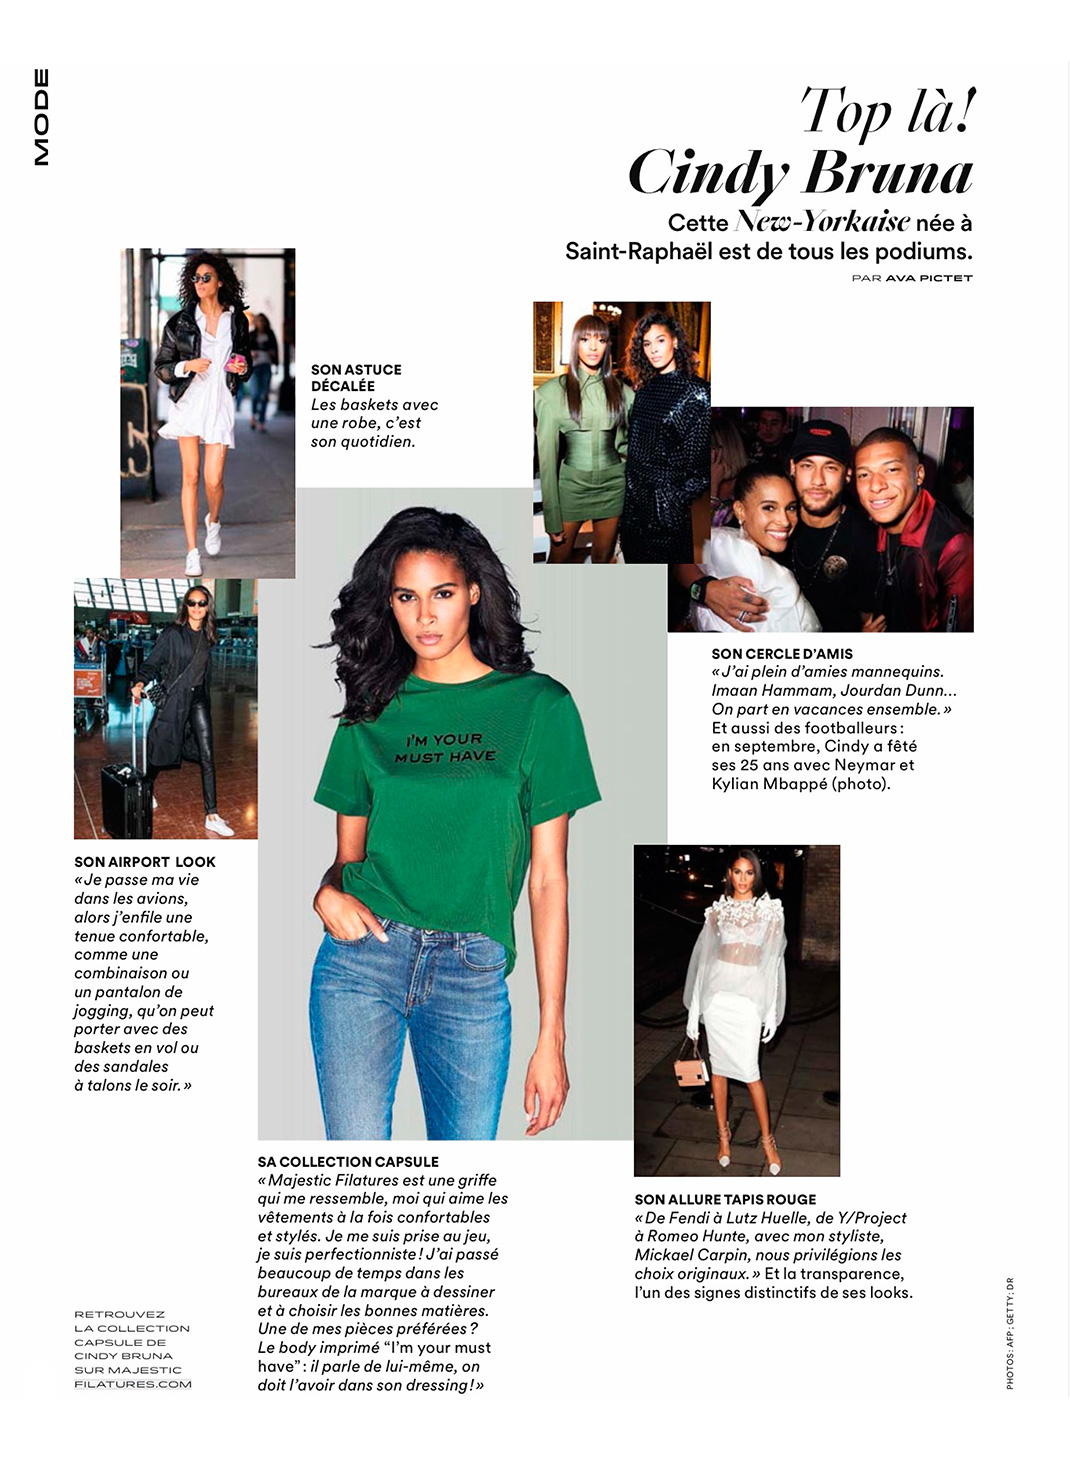 Grazia - Up-top! Cindy Bruna